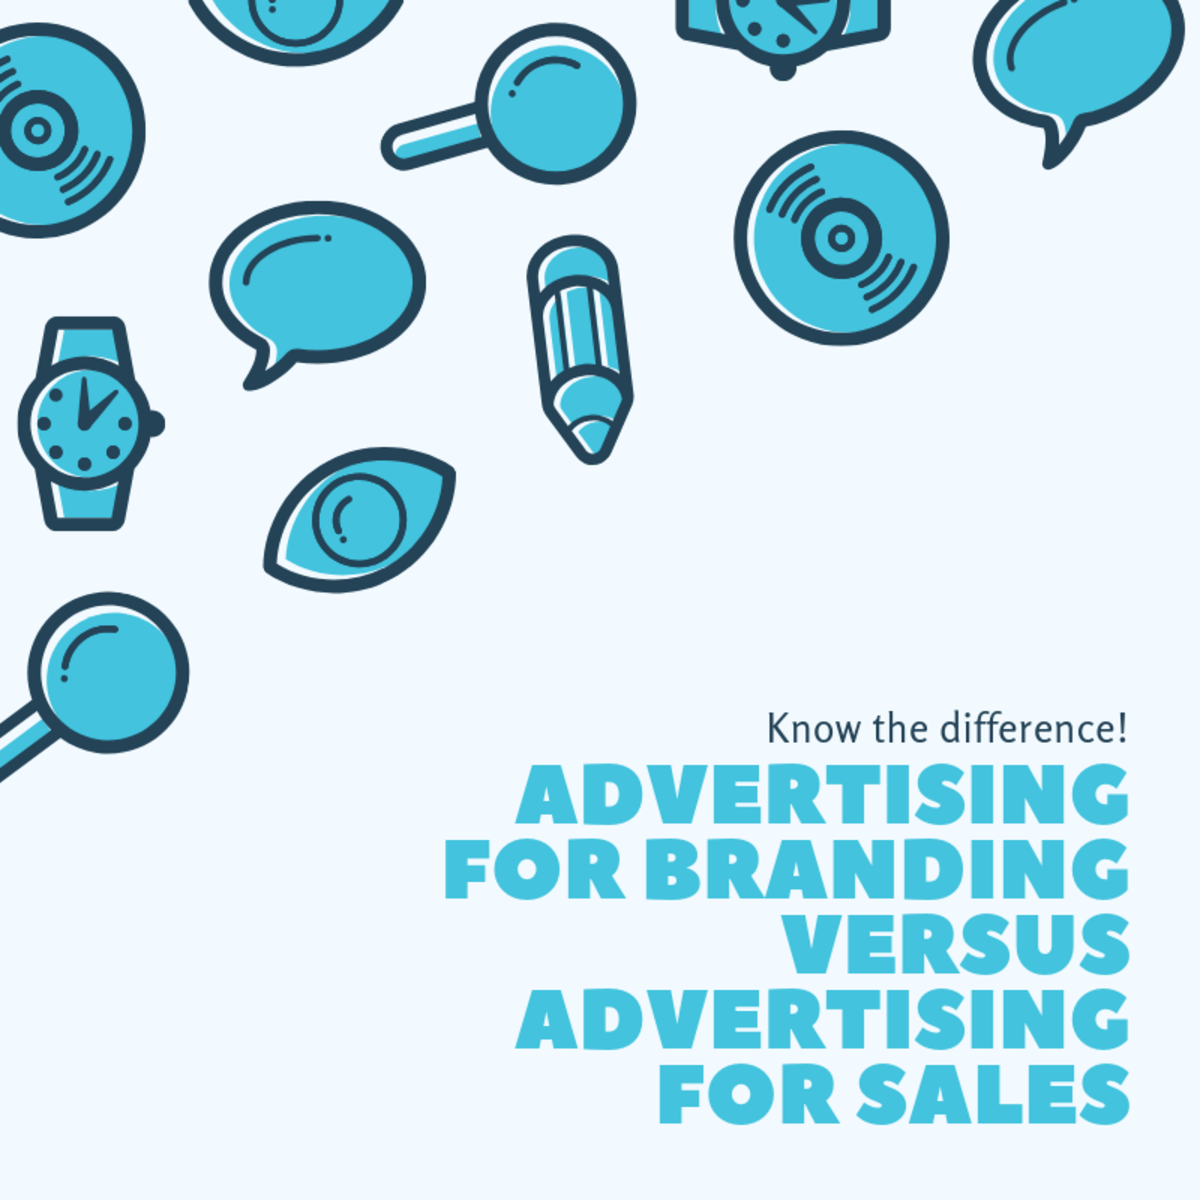 Advertising for Branding Versus Advertising for Sales